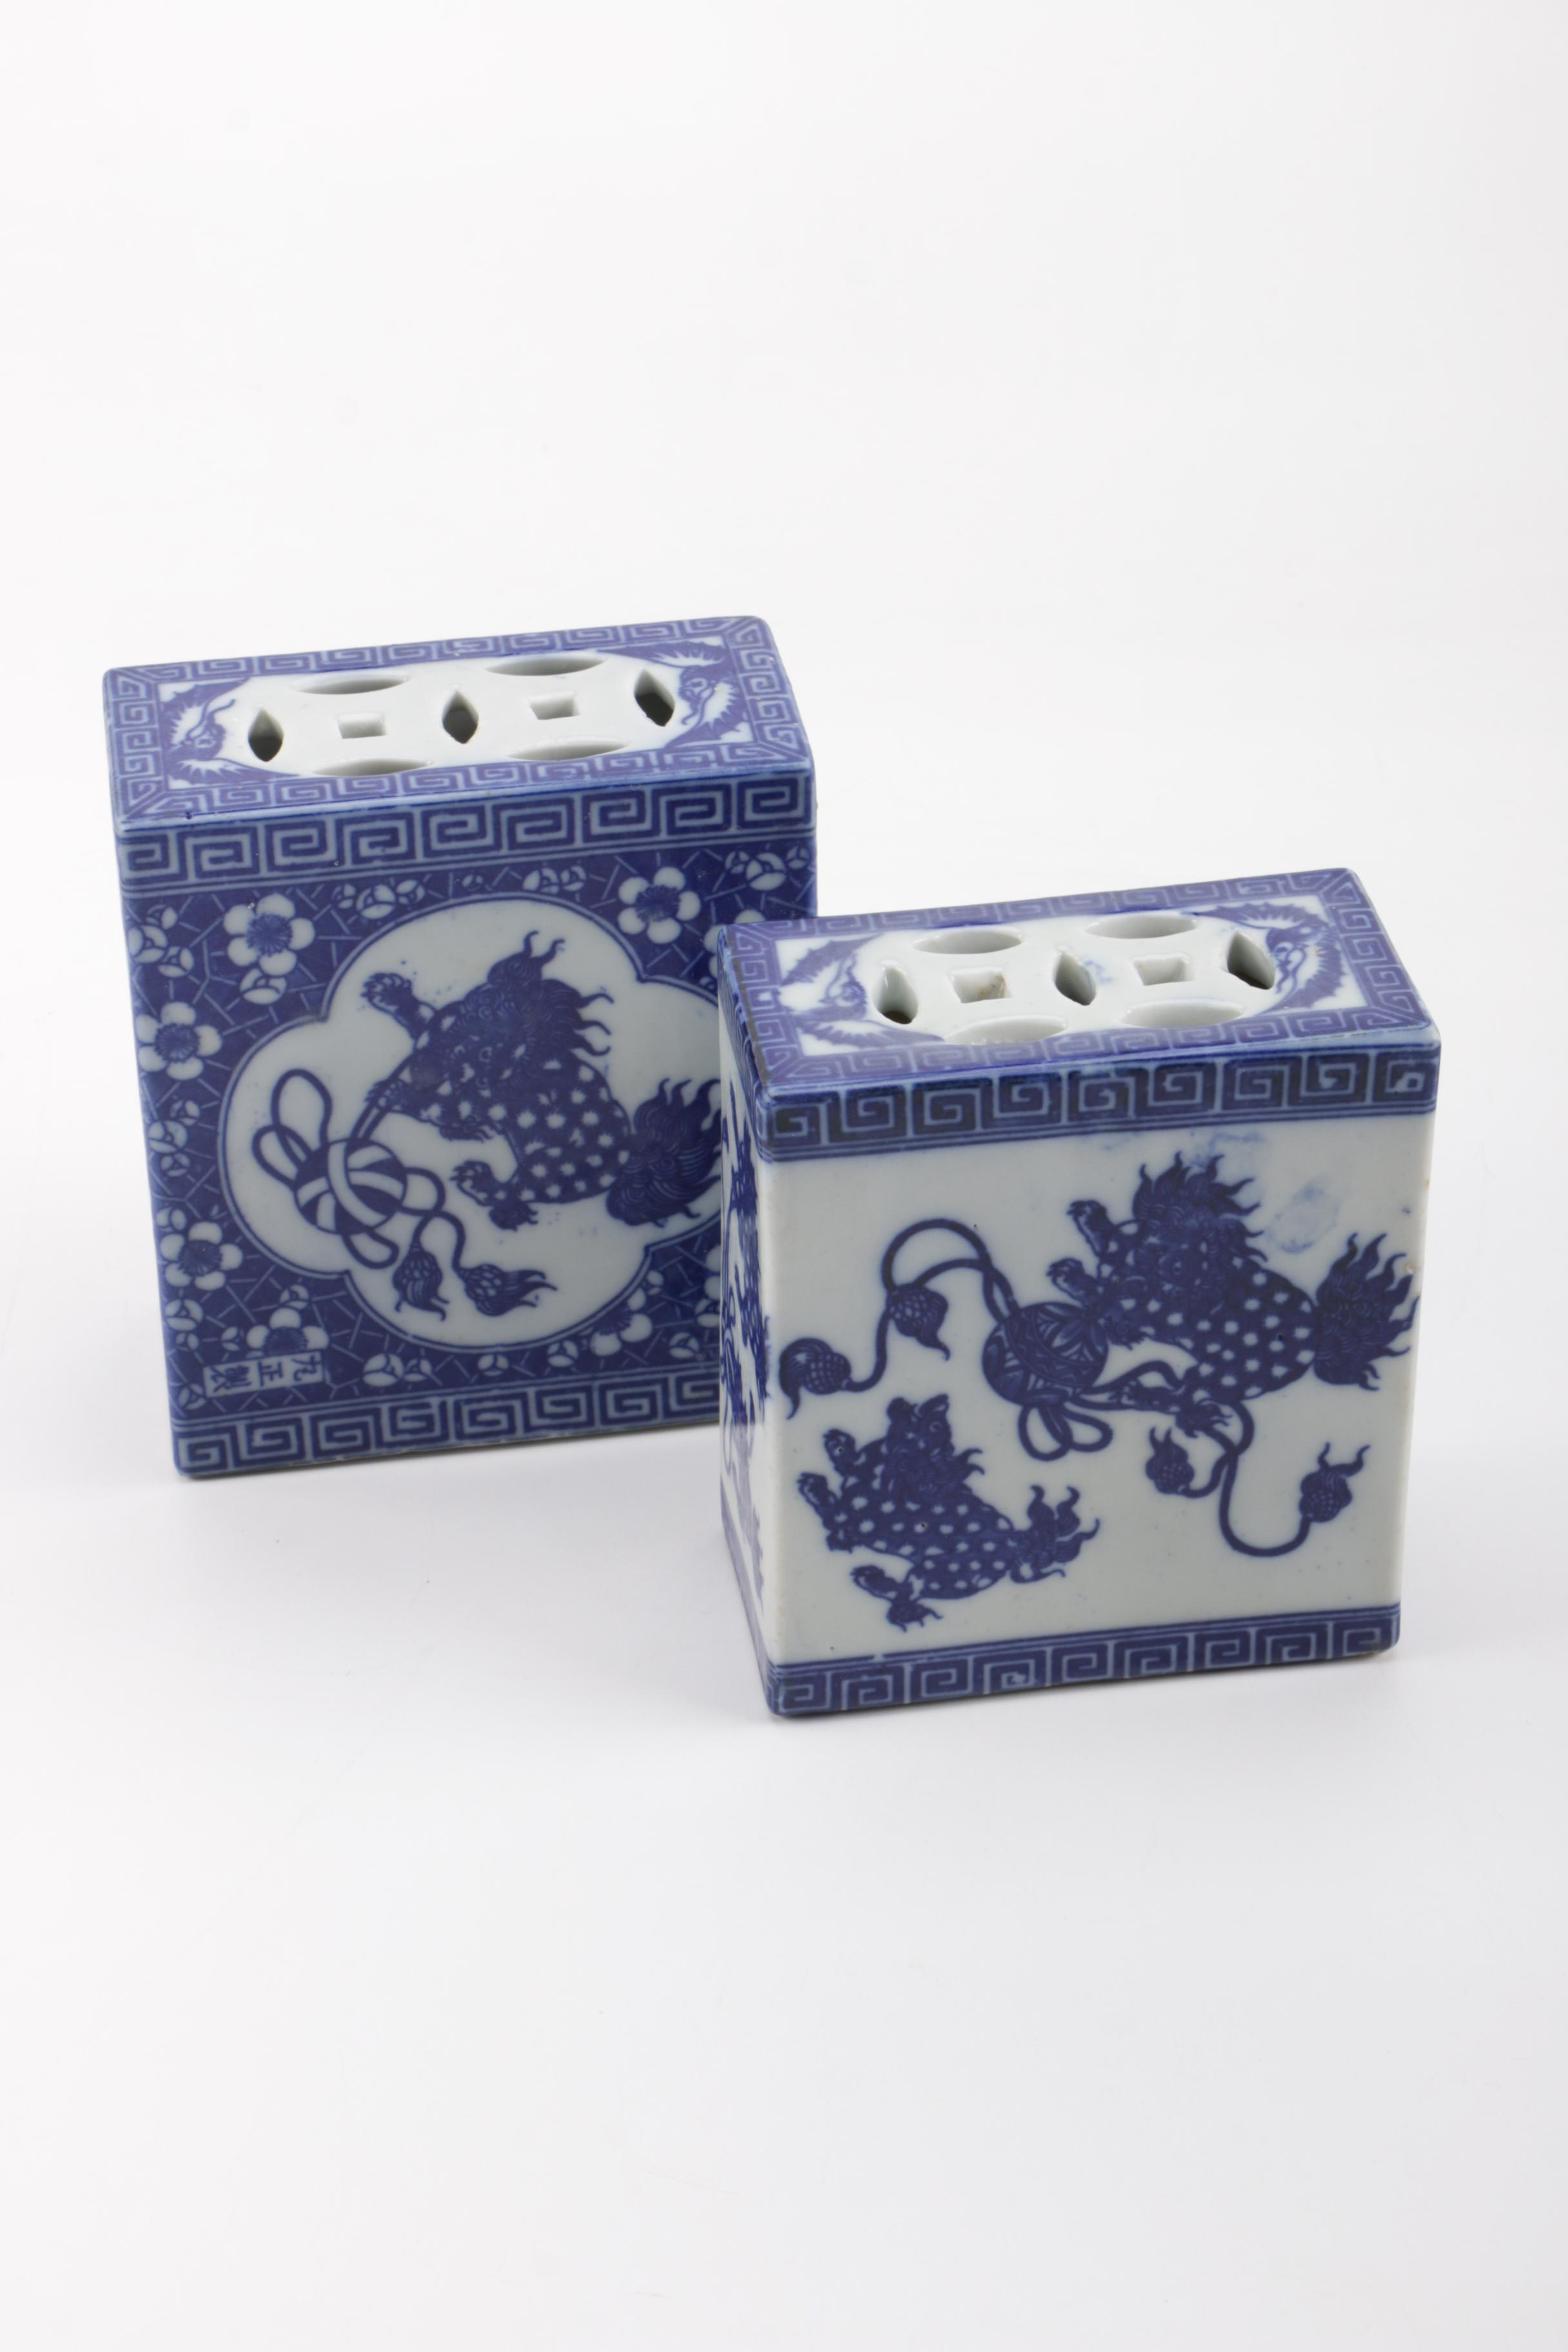 Pair of Blue and White Porcelain Incense Burners